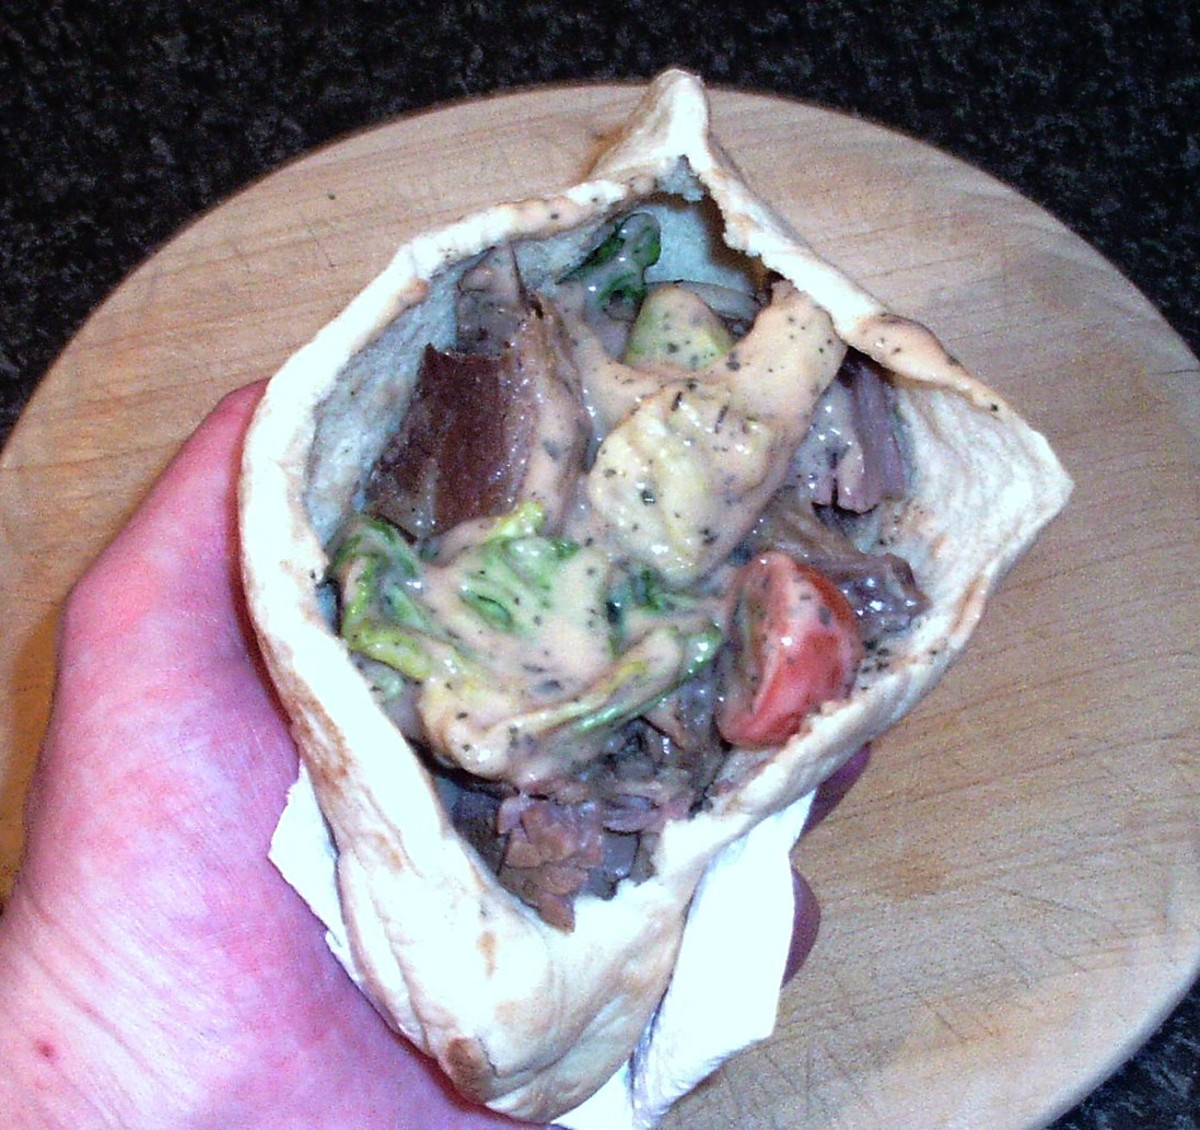 Last of the salad is made to fill the pitta pocket